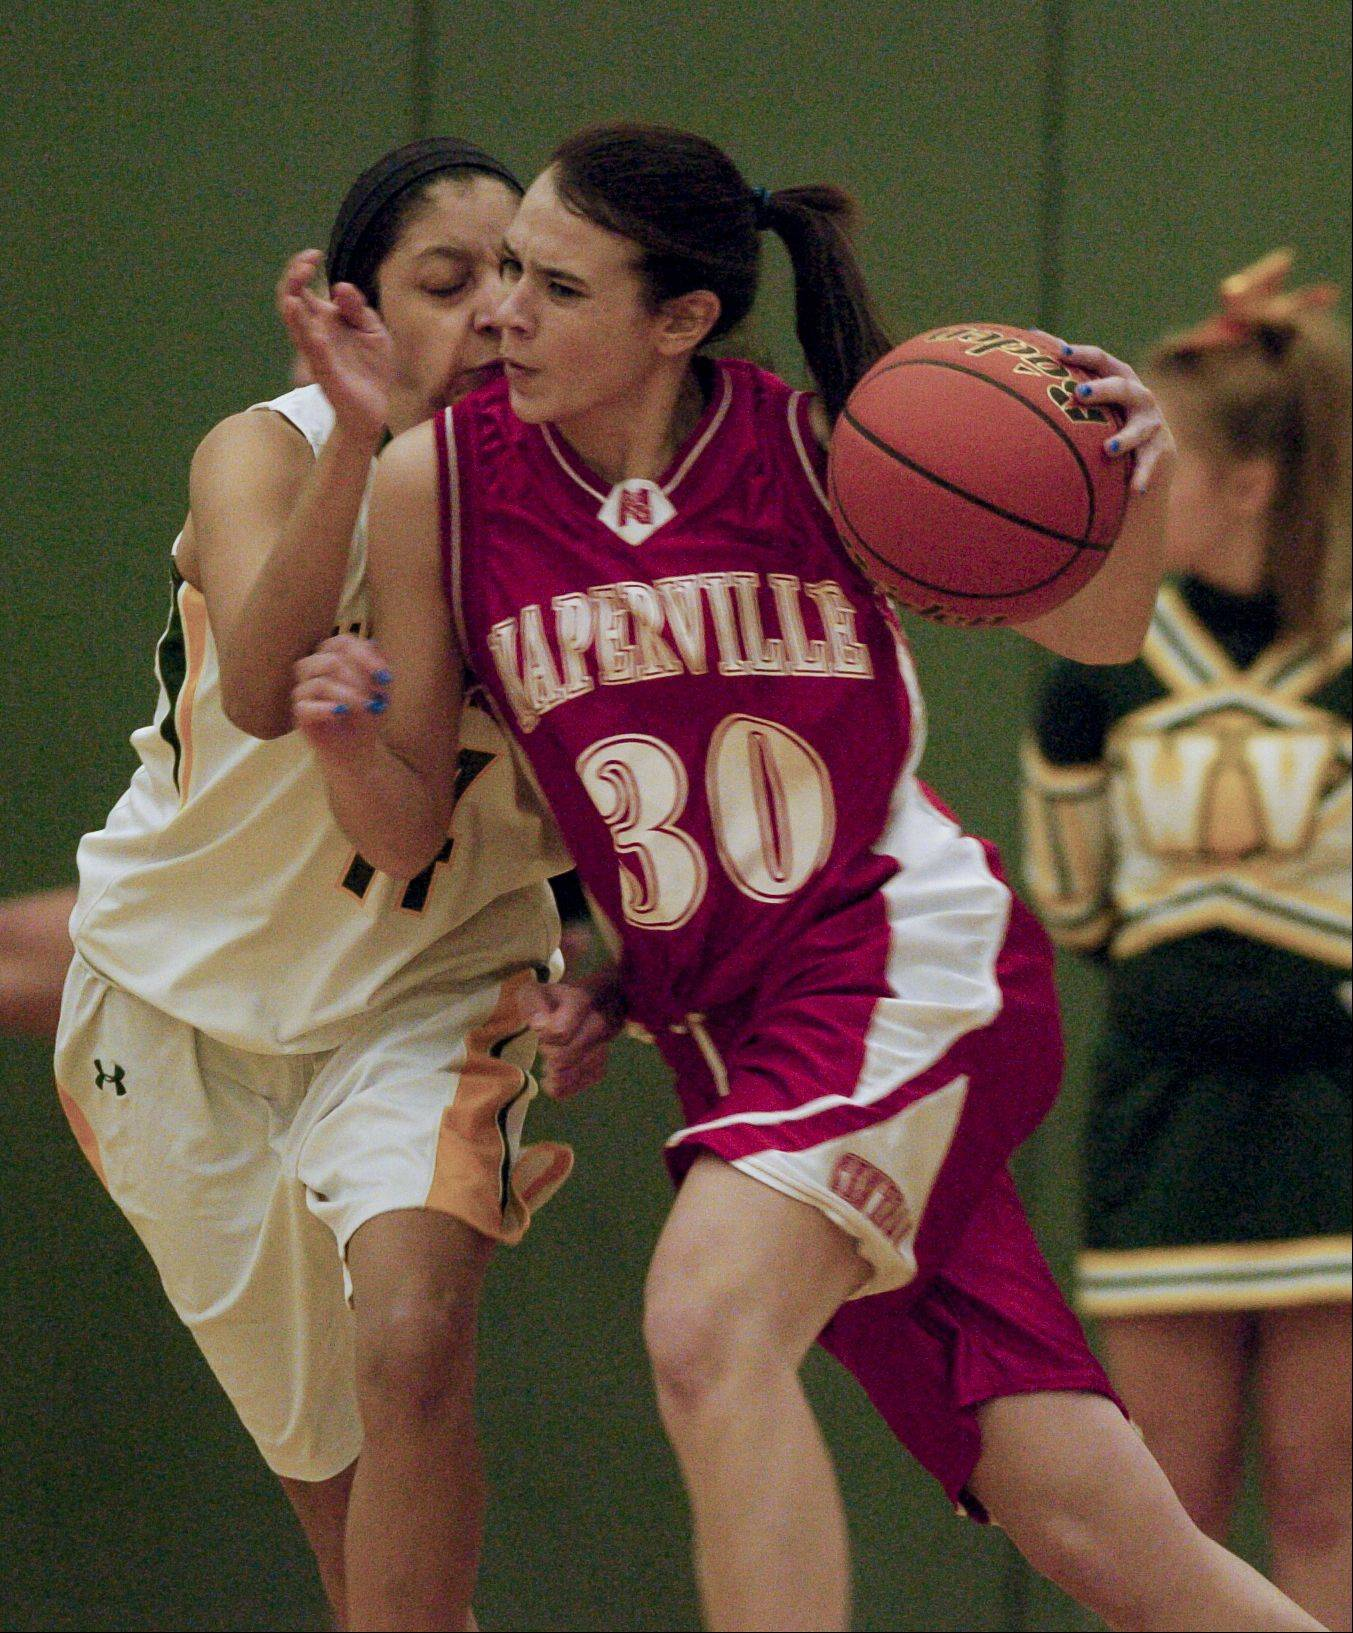 Naperville Central's Shannon Ryan drives past Waubonsie Valley's Andrea Colin during Monday's game in Aurora.